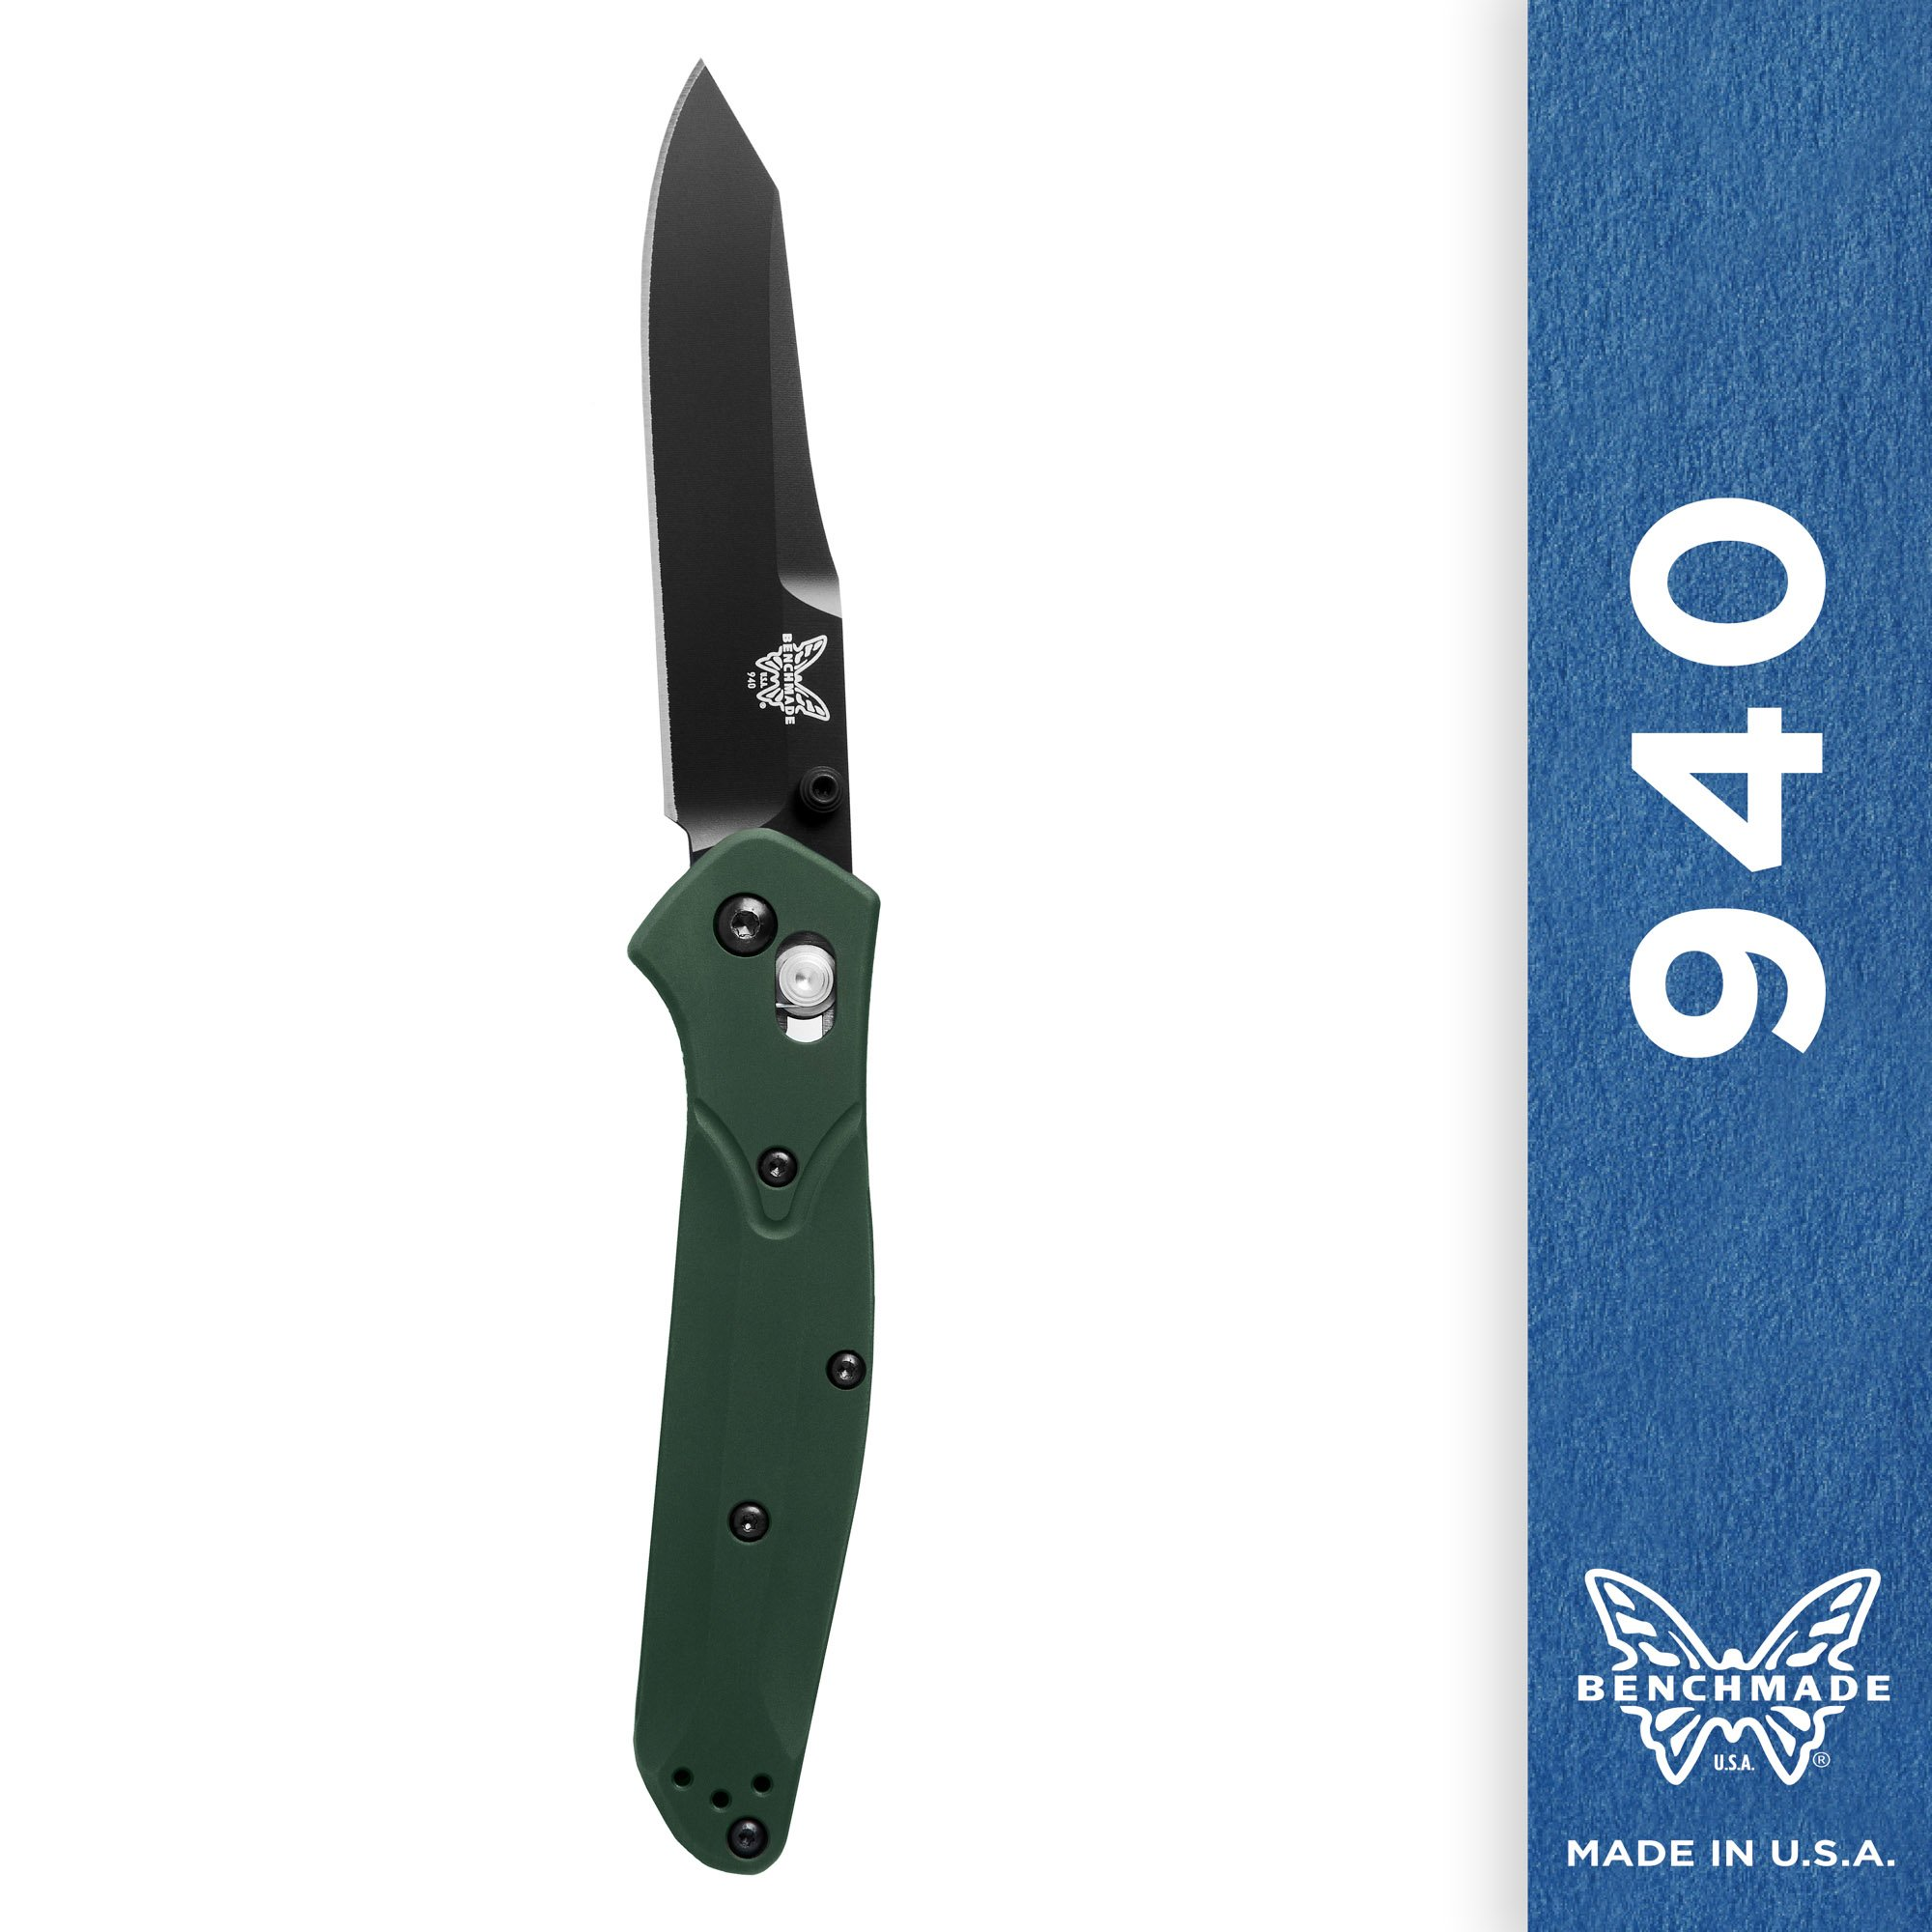 Benchmade Knife 940BK Osborne Black Blade Green Handle by Benchmade